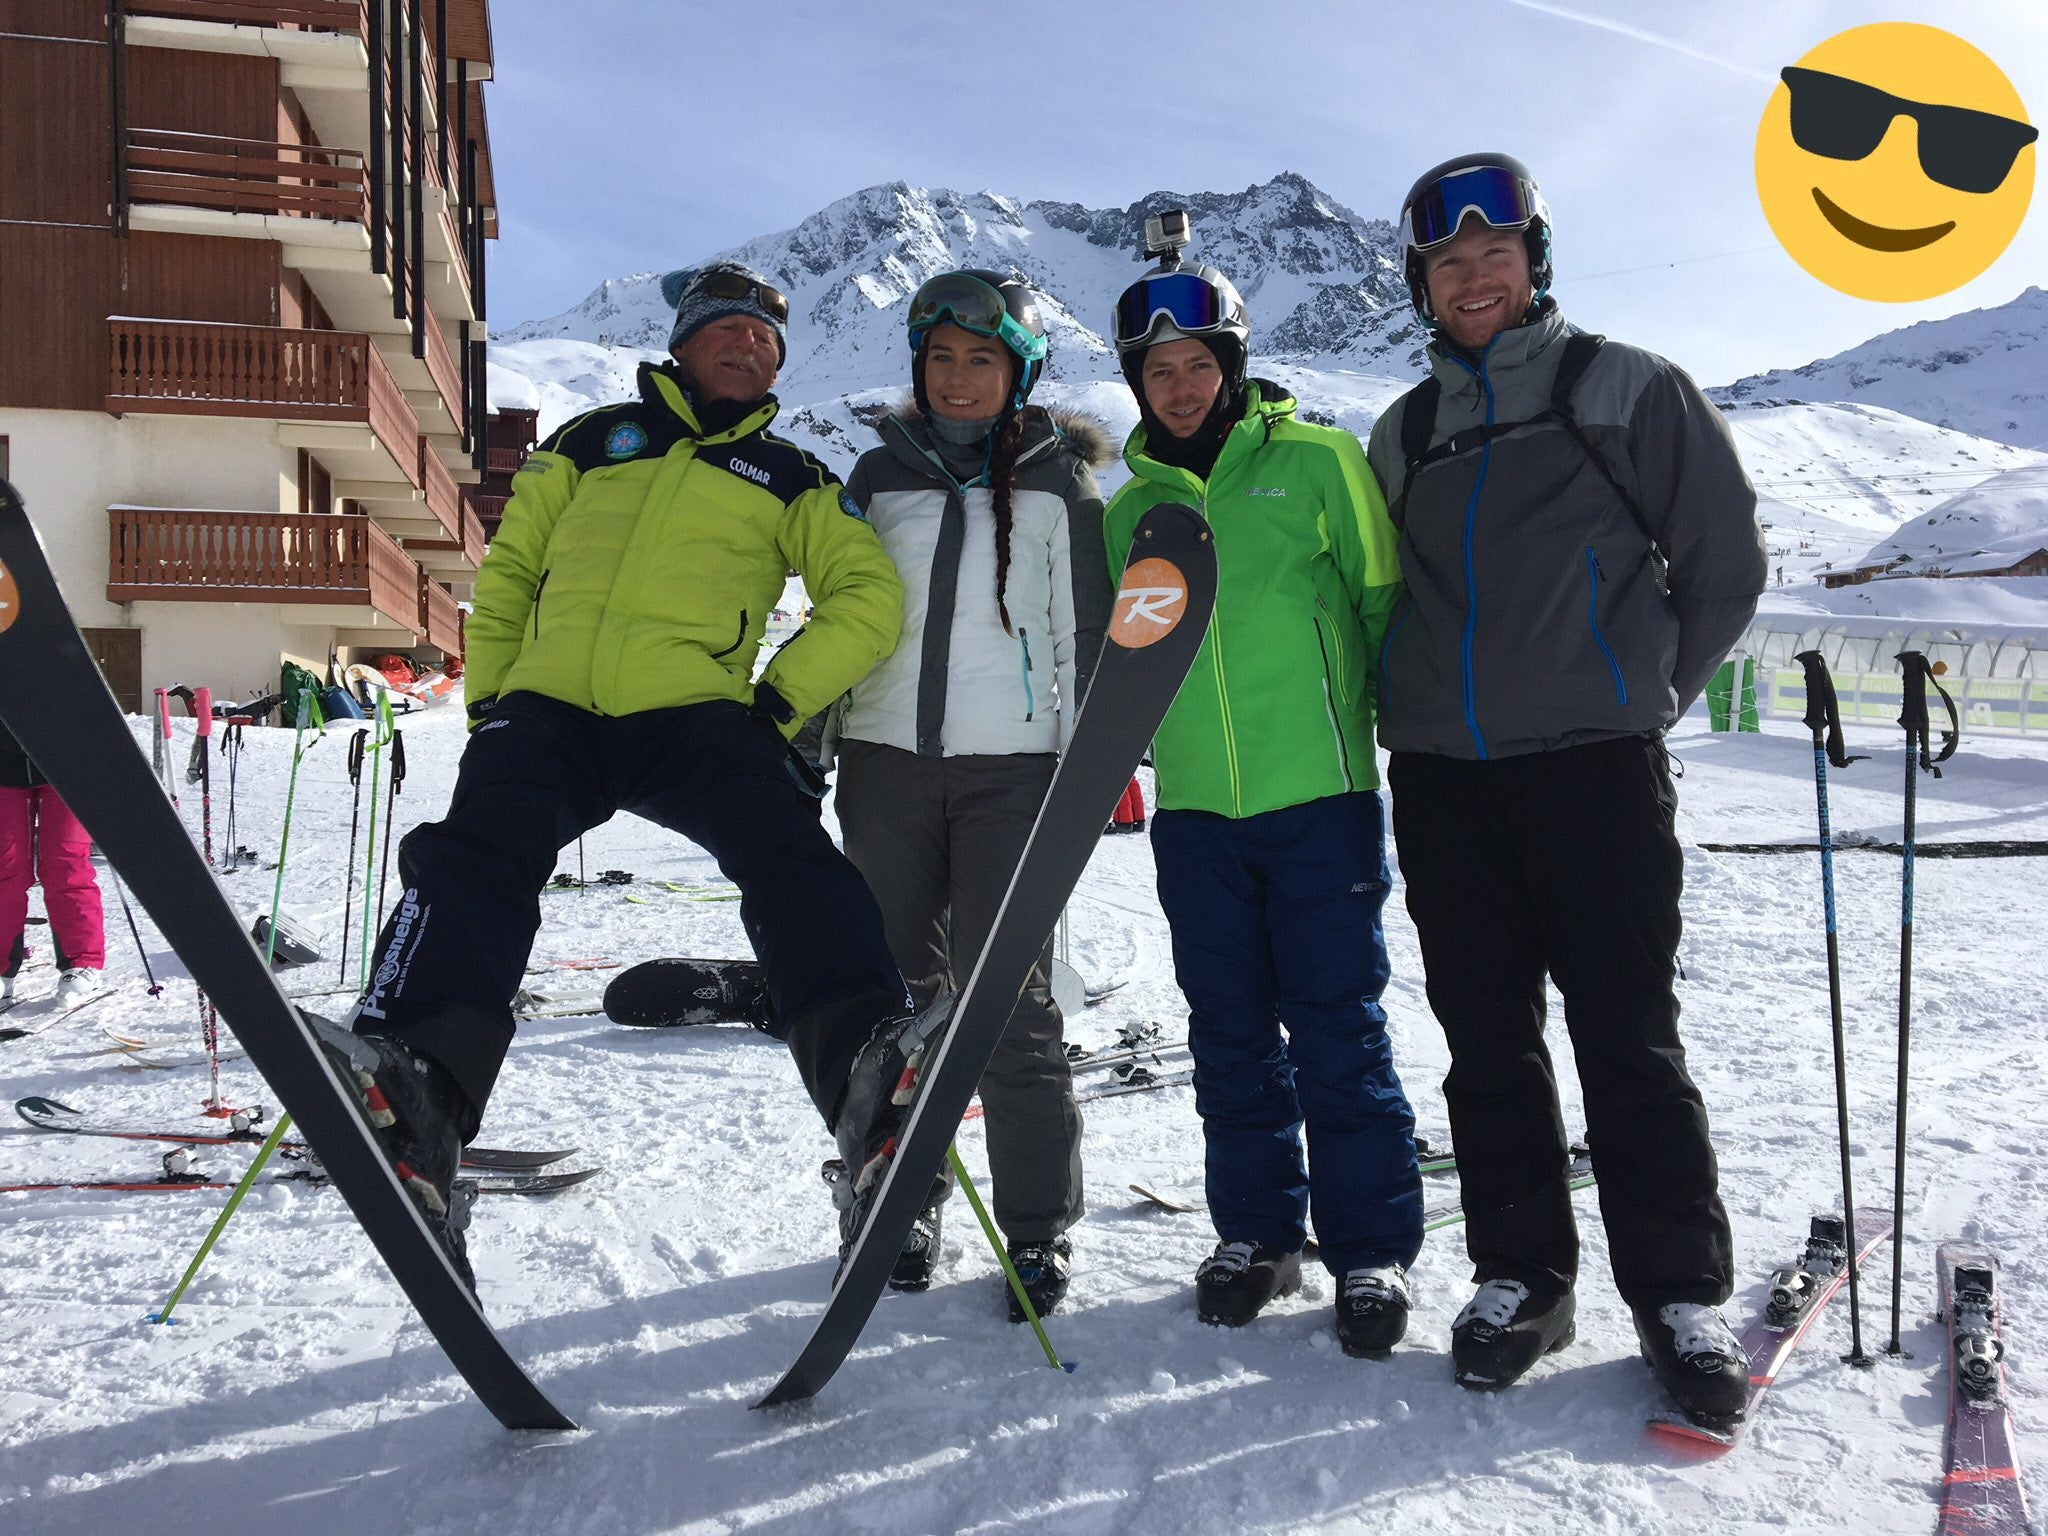 Prosneige - Ski school - Classe 1 - Graduation day